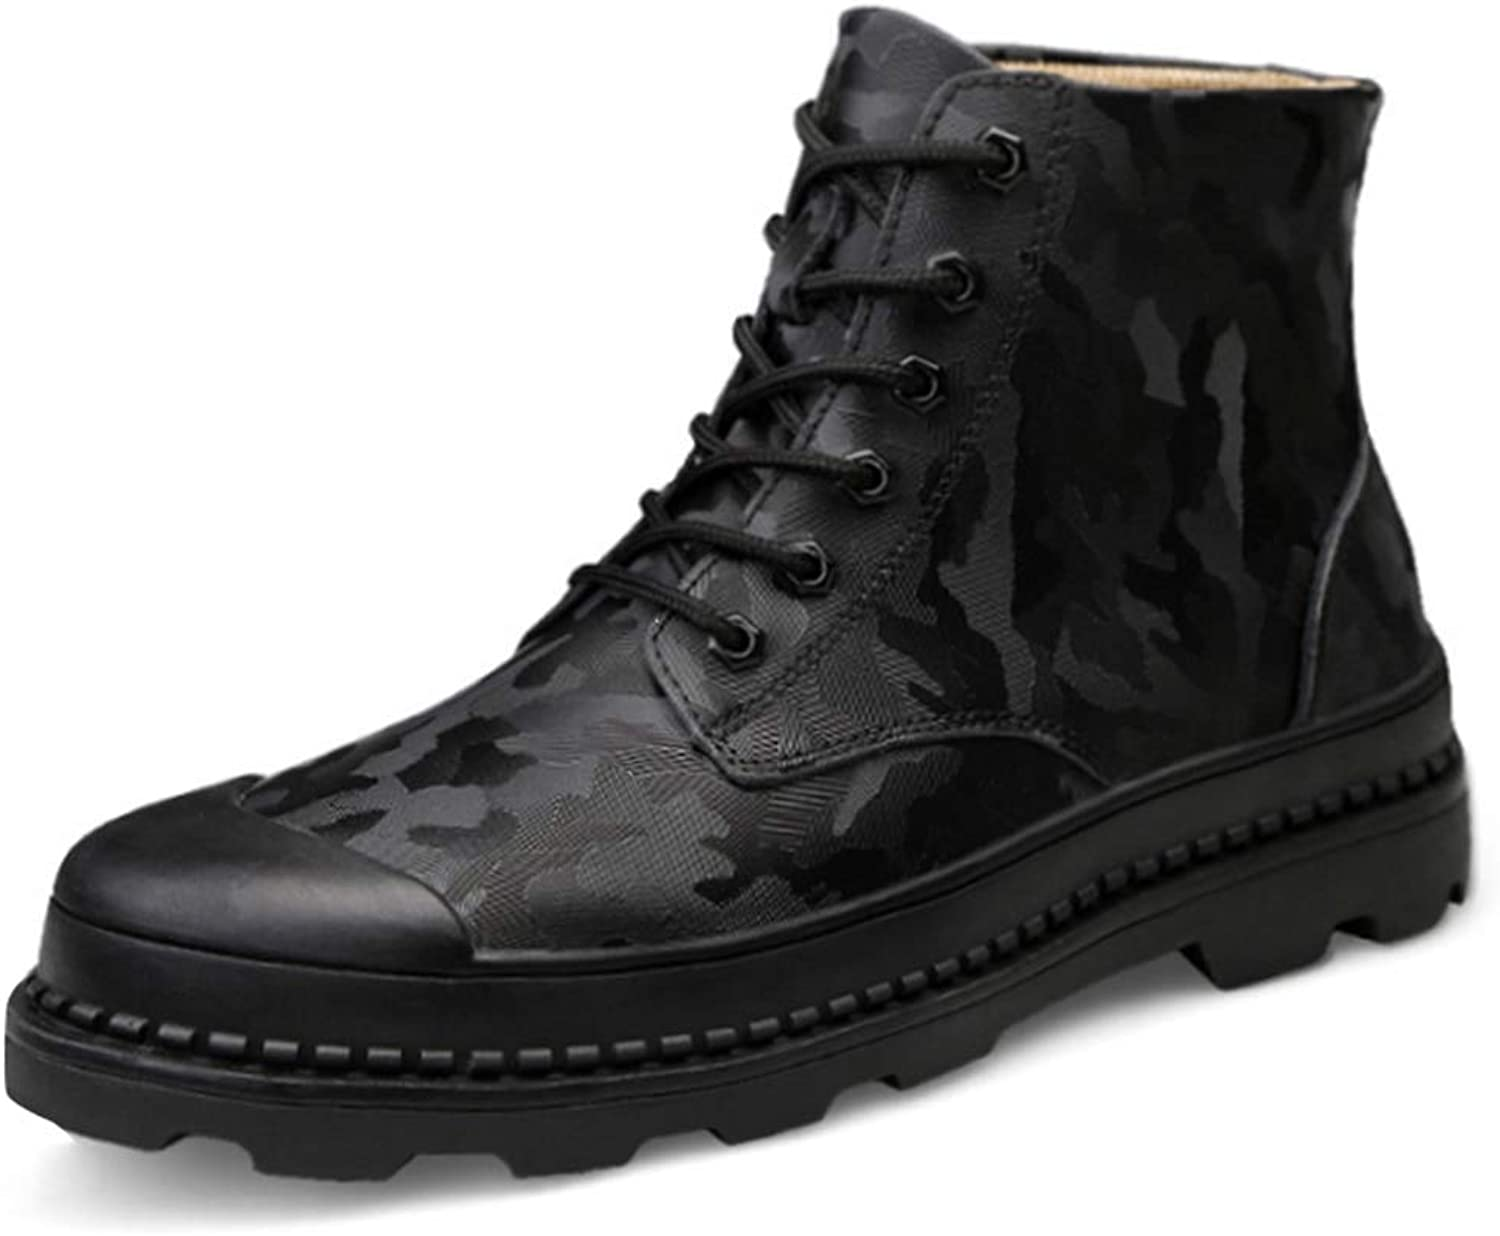 High-Cut Tooling Men's Leather New Non-Slip Casual shoes Men's Camouflage Outdoor shoes (color   Black, Size   10 US)